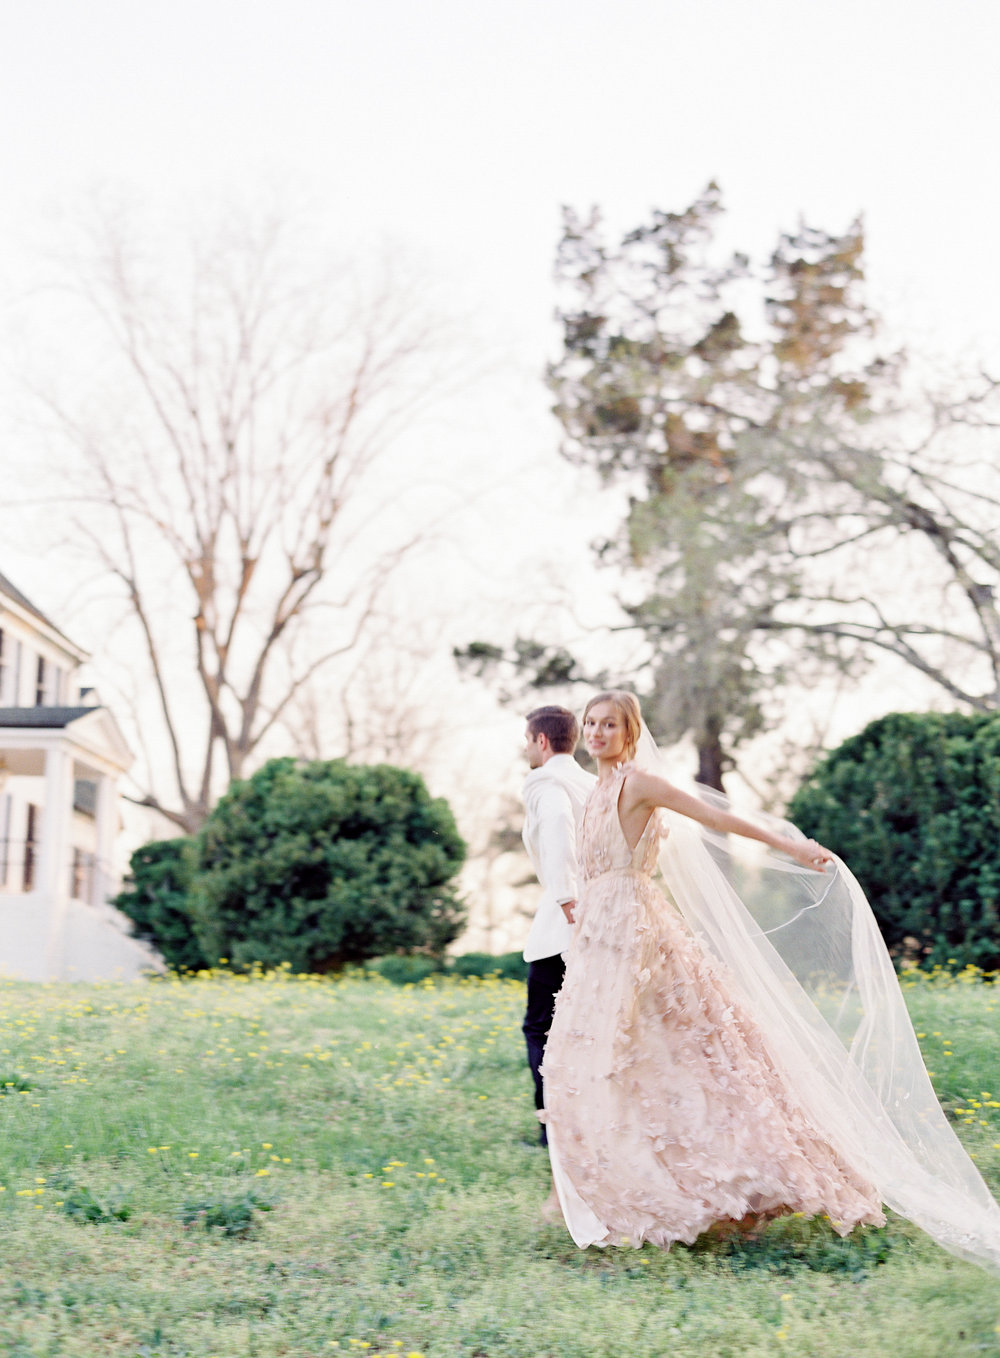 Virginia blush spring wedding at North Point Plantation with Rachel May Photography and East Made Event Company featured on OnceWed-0445.jpg